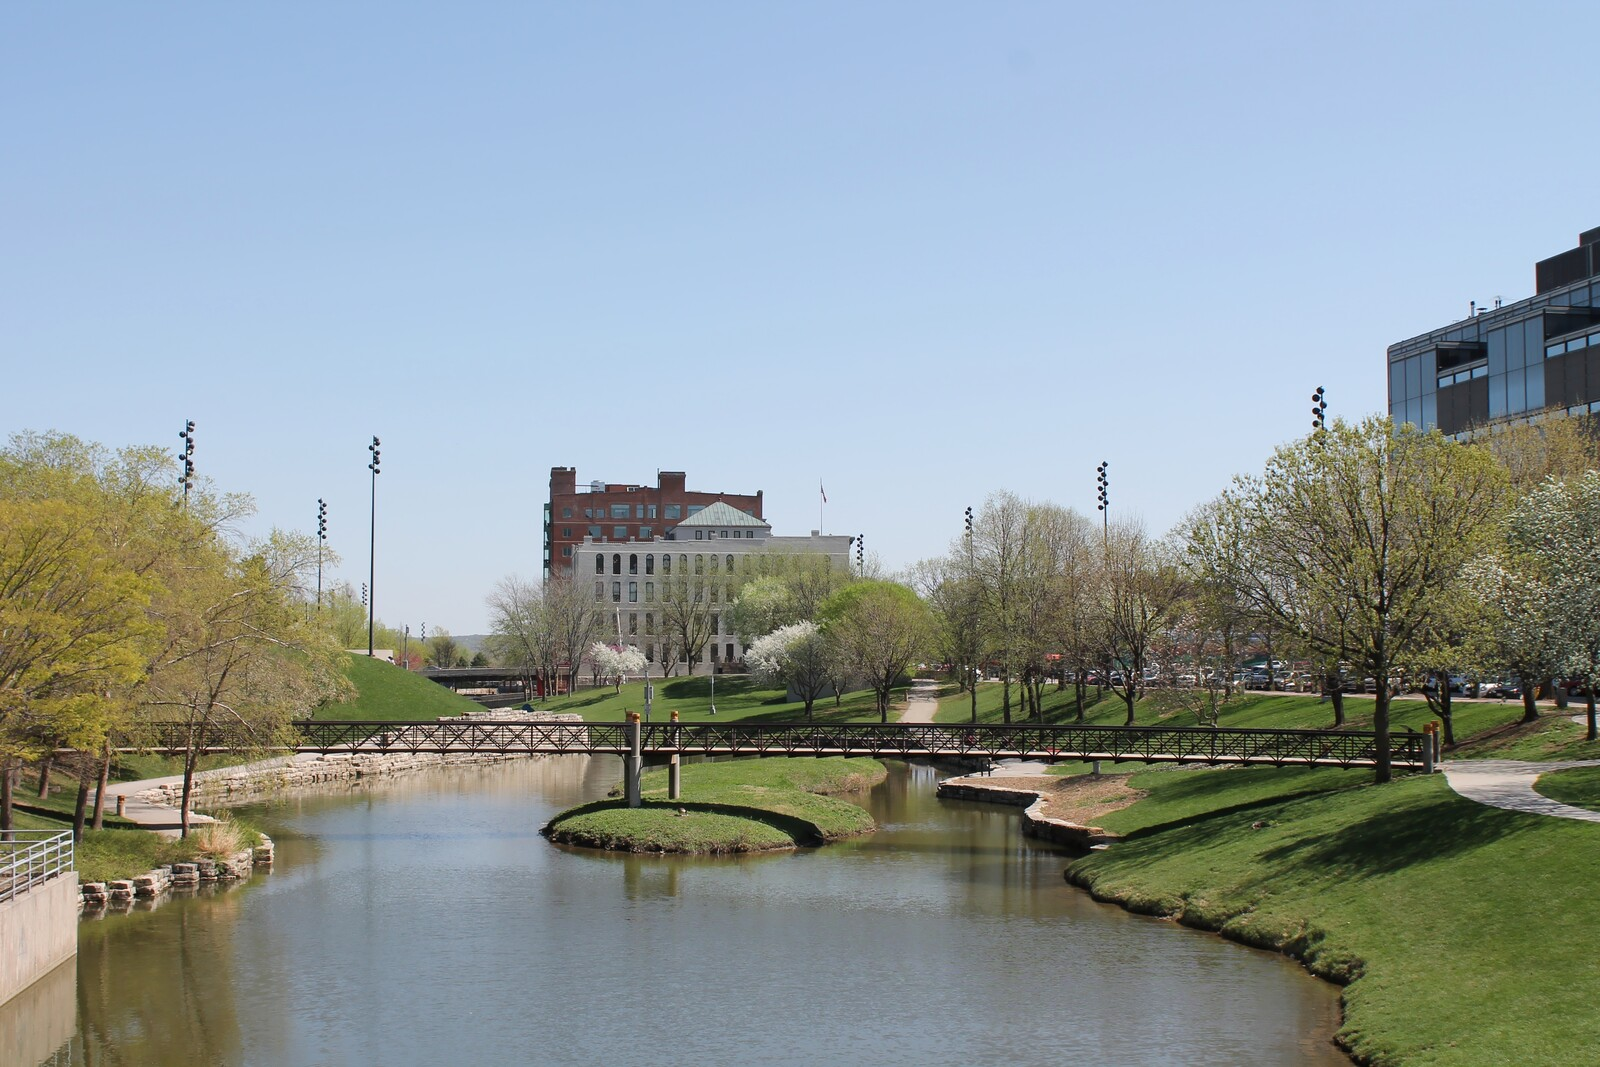 Best Places to Retire in Nebraska - Gene Leahy Pedestrian Mall in Omaha - Green grass lining the waterway with a footbridge over the water.